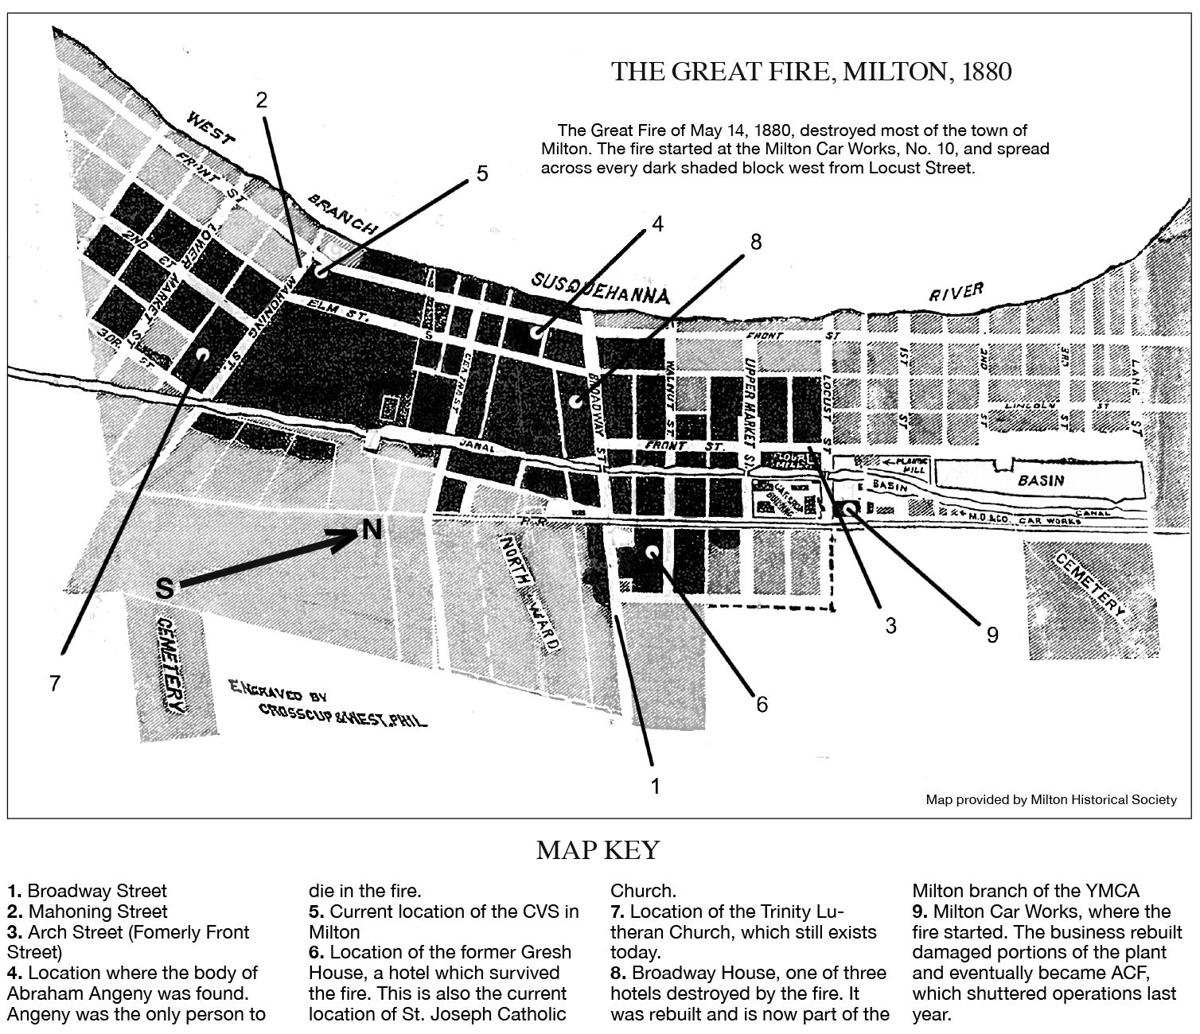 Milton Great Fire of 1880 Map